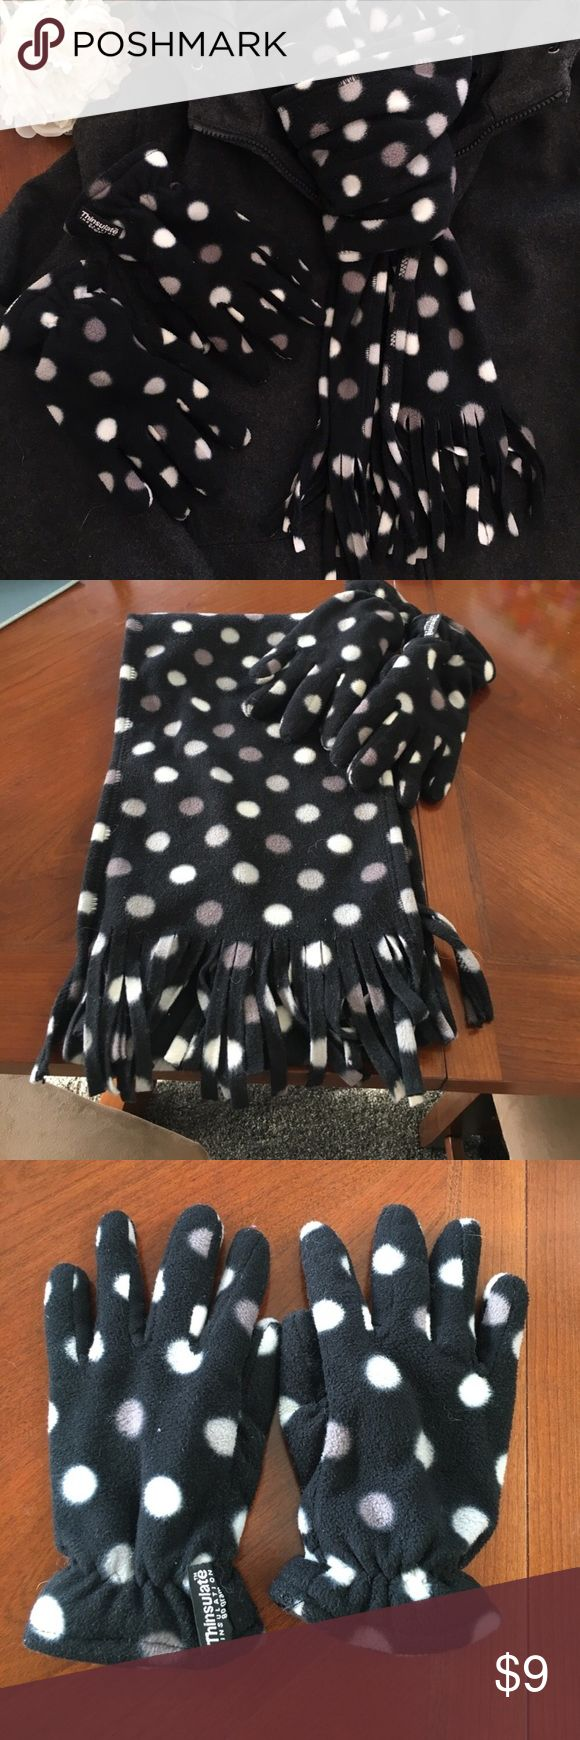 Thinsulate fleece scarf gloves set polka dot black This is a cute polka dot fleece scarf and gloves set by thinsulate in very good condition. Background is black, dots are grey and white. Smoke free dog friendly home. Thinsulate Accessories Gloves & Mittens